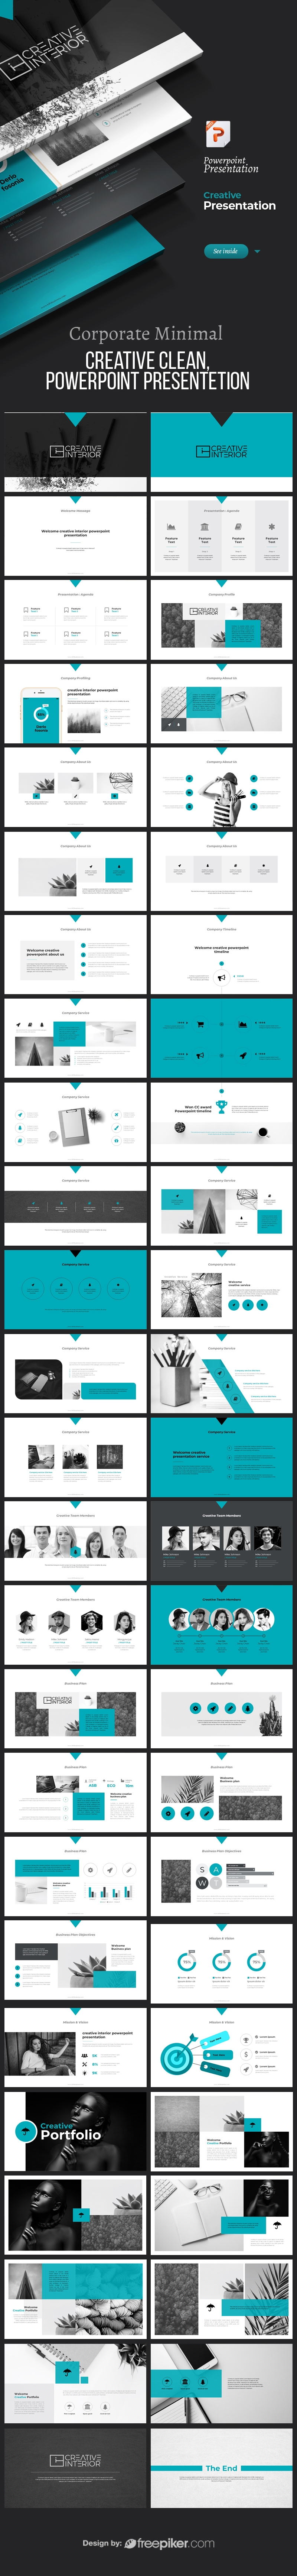 Powerpoint Template Professional Pack